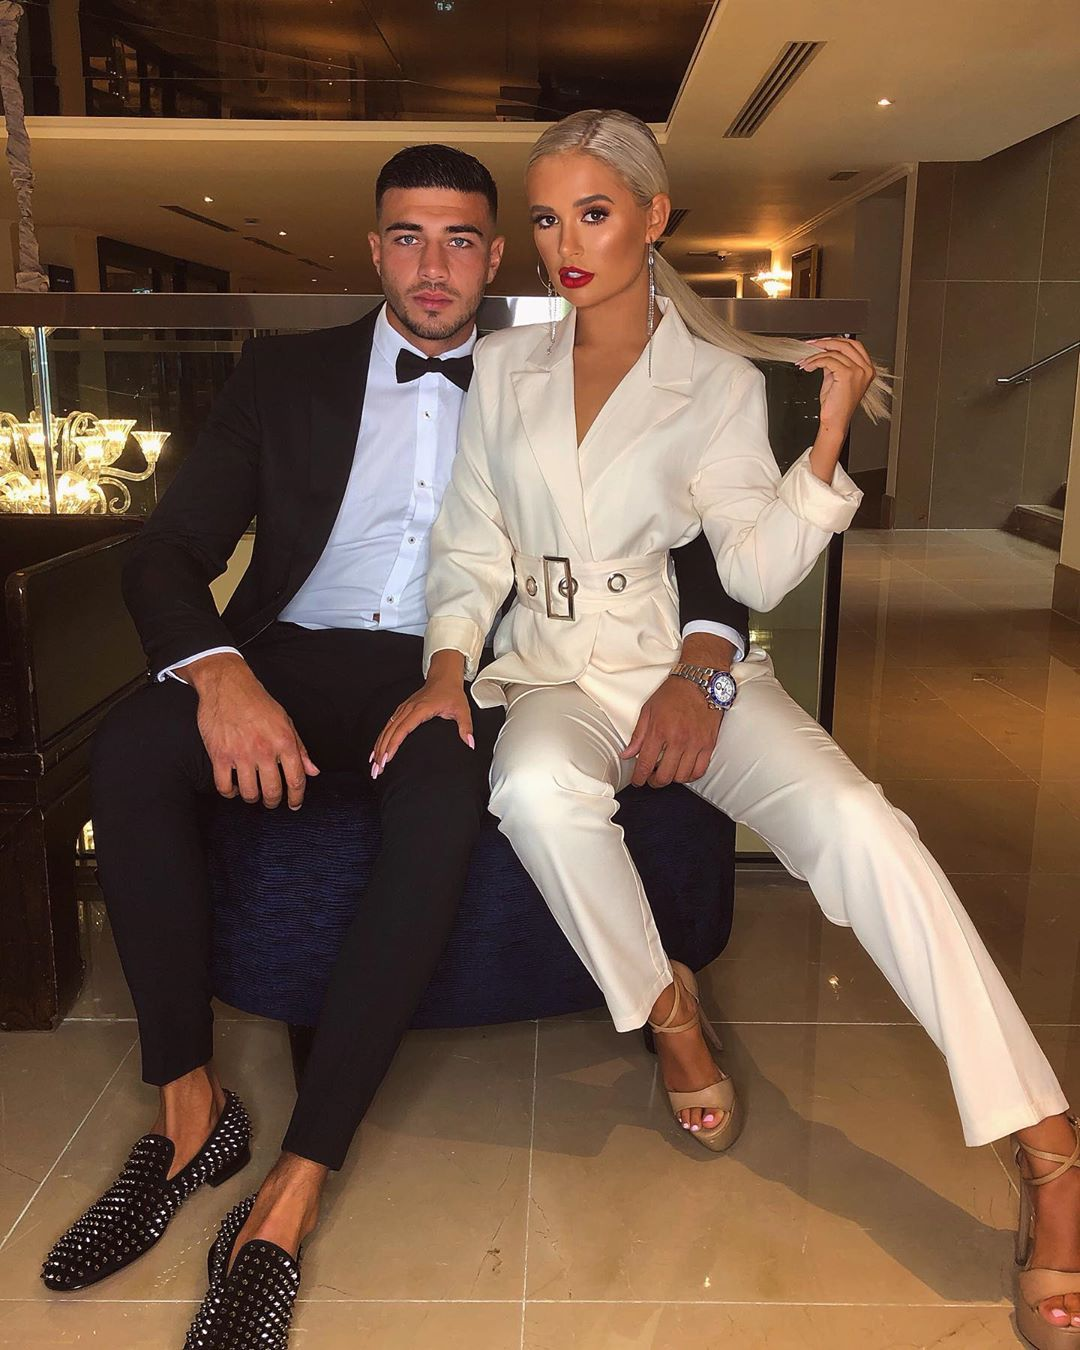 Image may contain: Molly-Mae and Tommy Ibiza, Molly-Mae Hague, Tommy Fury, Love Island, holiday, trip, Ibiza, Islanders, banned, Amy Hart, fake, Blazer, Jacket, Suit, Overcoat, Coat, Shoe, Footwear, Human, Person, Apparel, Clothing